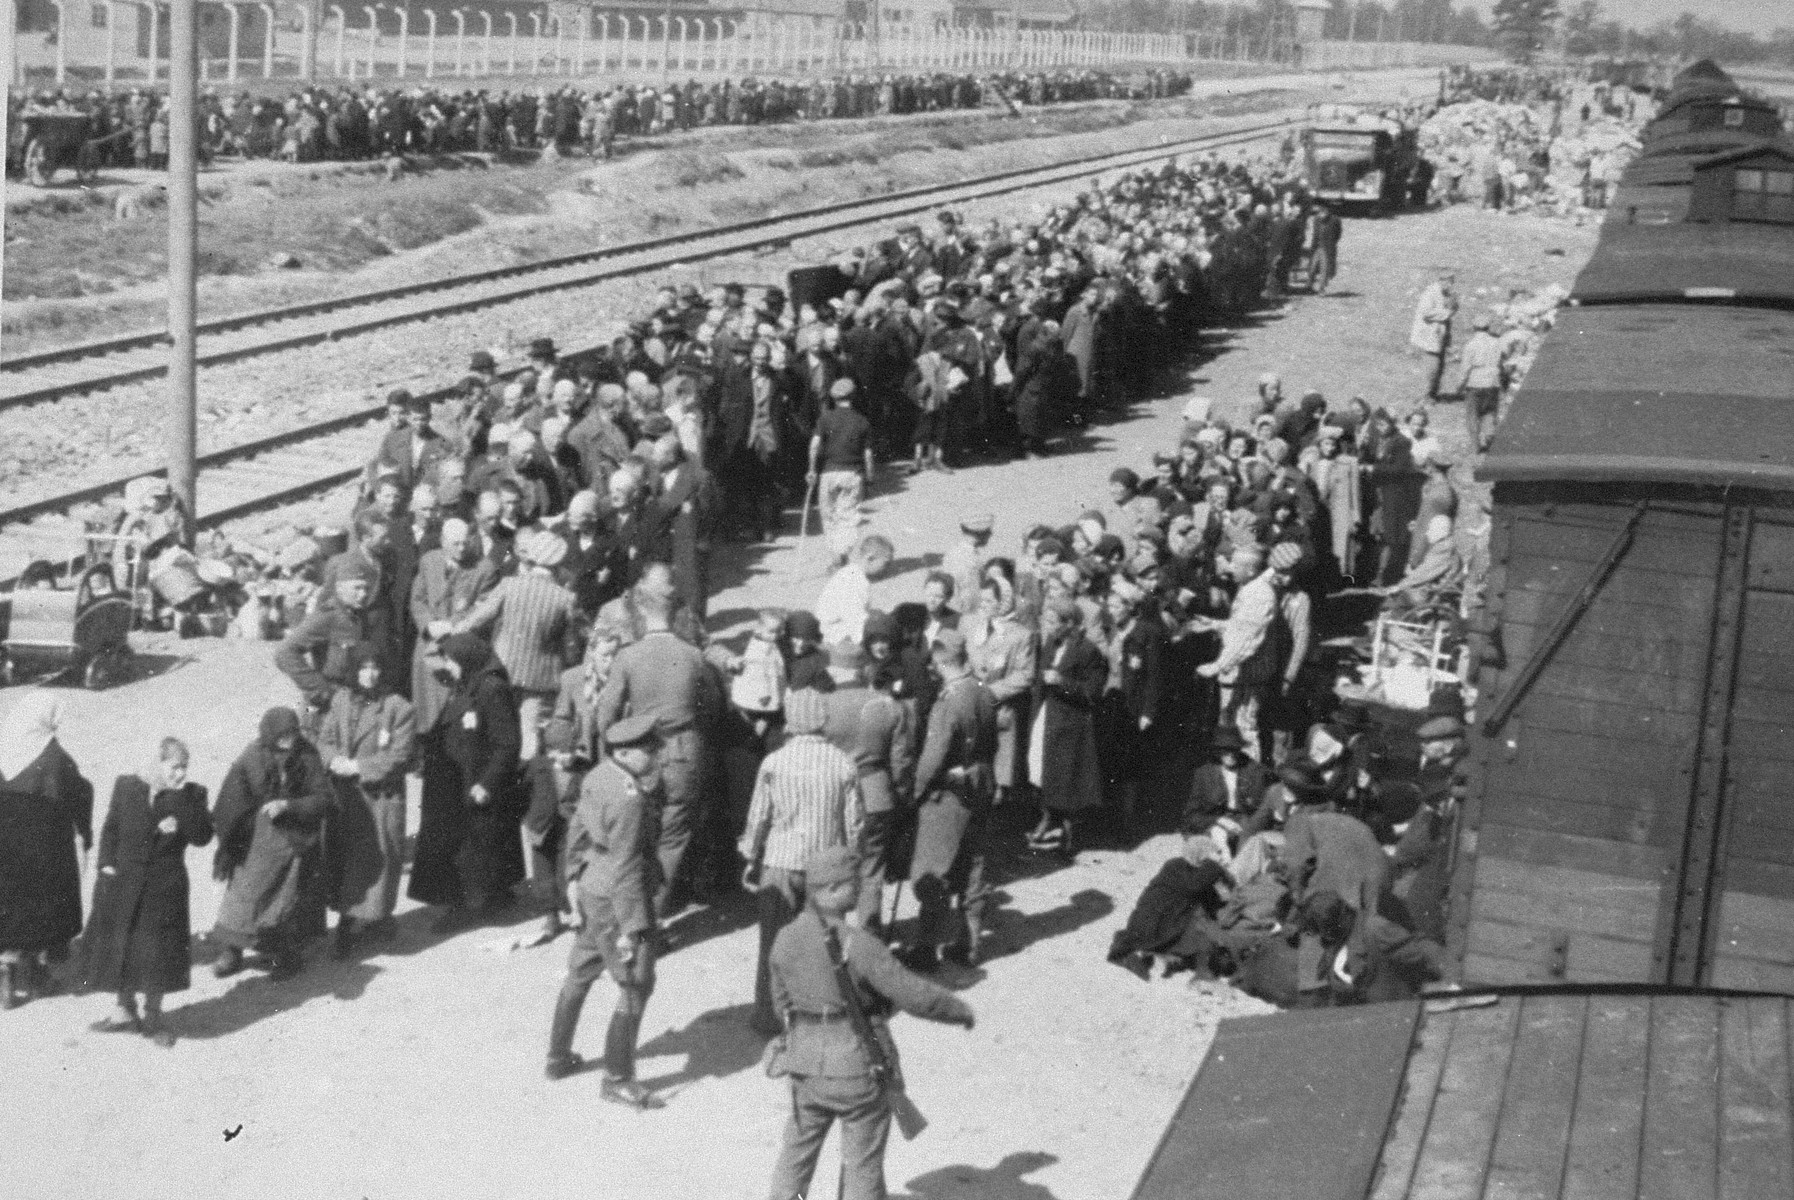 Jews from Subcarpathian Rus undergo a selection on the ramp at Auschwitz-Birkenau.  Pictured in front holding a riding crop may be either SS Unterscharfuehrer Wilhelm Emmerich or SS Haupsturmfuehrer Georg Hoecker assisted by the Jewish prisoner Hans Schorr.  Also pictured are Norbert Lopper and Irena Fogel (later Weiss) is pictured in the front second from left, facing forward. Pictured in the front right is Erszebet Klein Roth, her mother and aunt.  Additional individuals have been identified in the center of the photograph: Hinda Lazarowitz, Pepe Hershkowitz (Apperman), and Gittel (Gail) Hershkowitz (Brandwein).